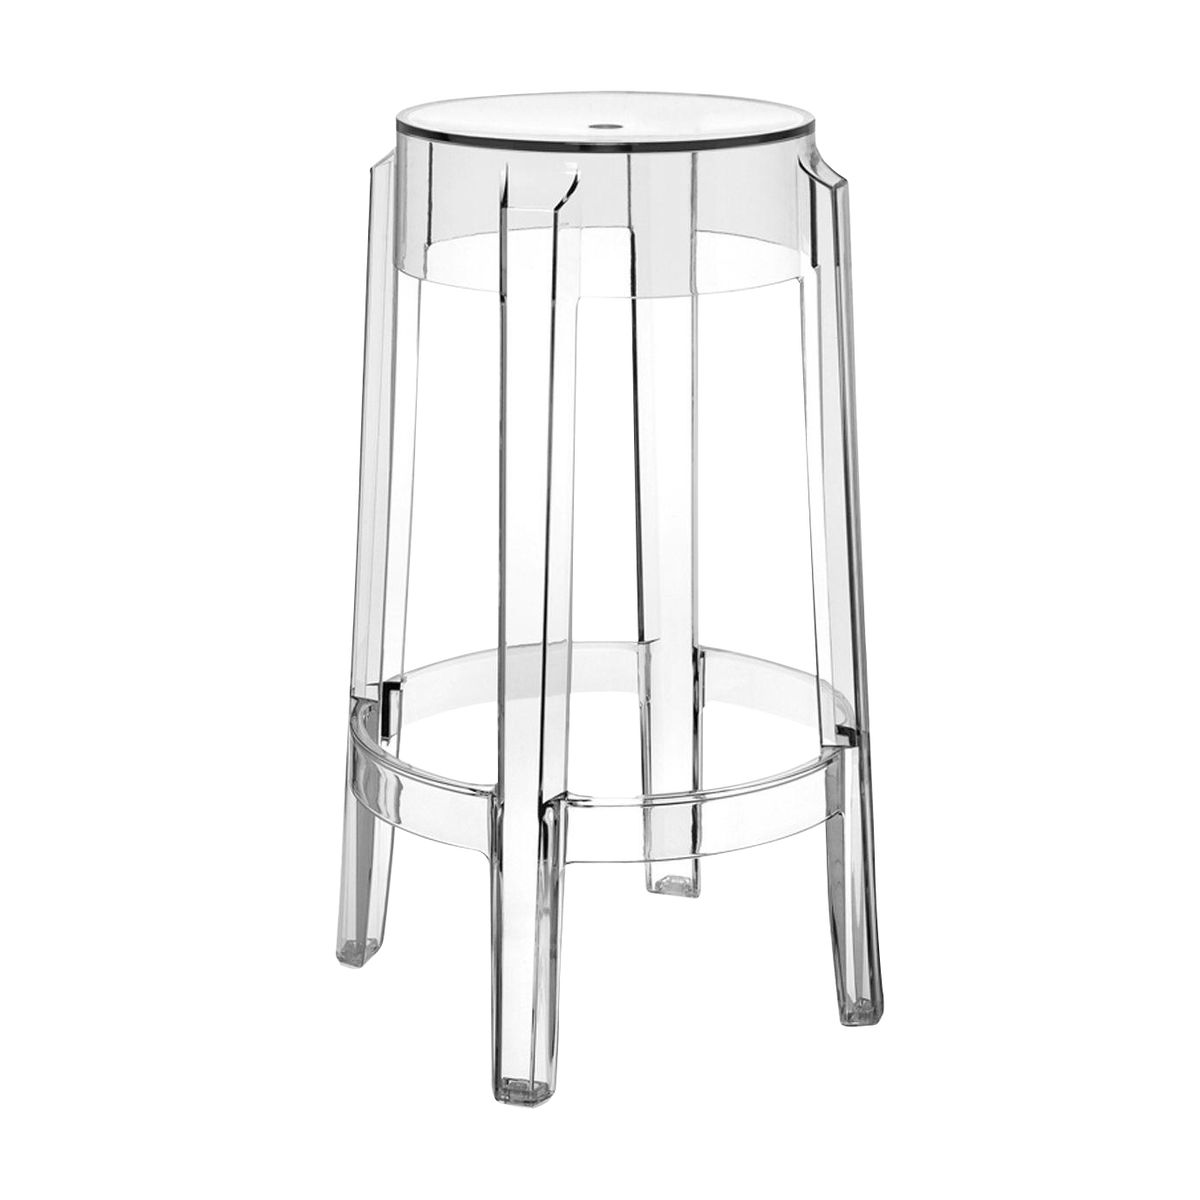 Kartell - Charles Ghost Stool 65cm - transparent/seat height 65cm  sc 1 st  AmbienteDirect : ghost chair stool - islam-shia.org